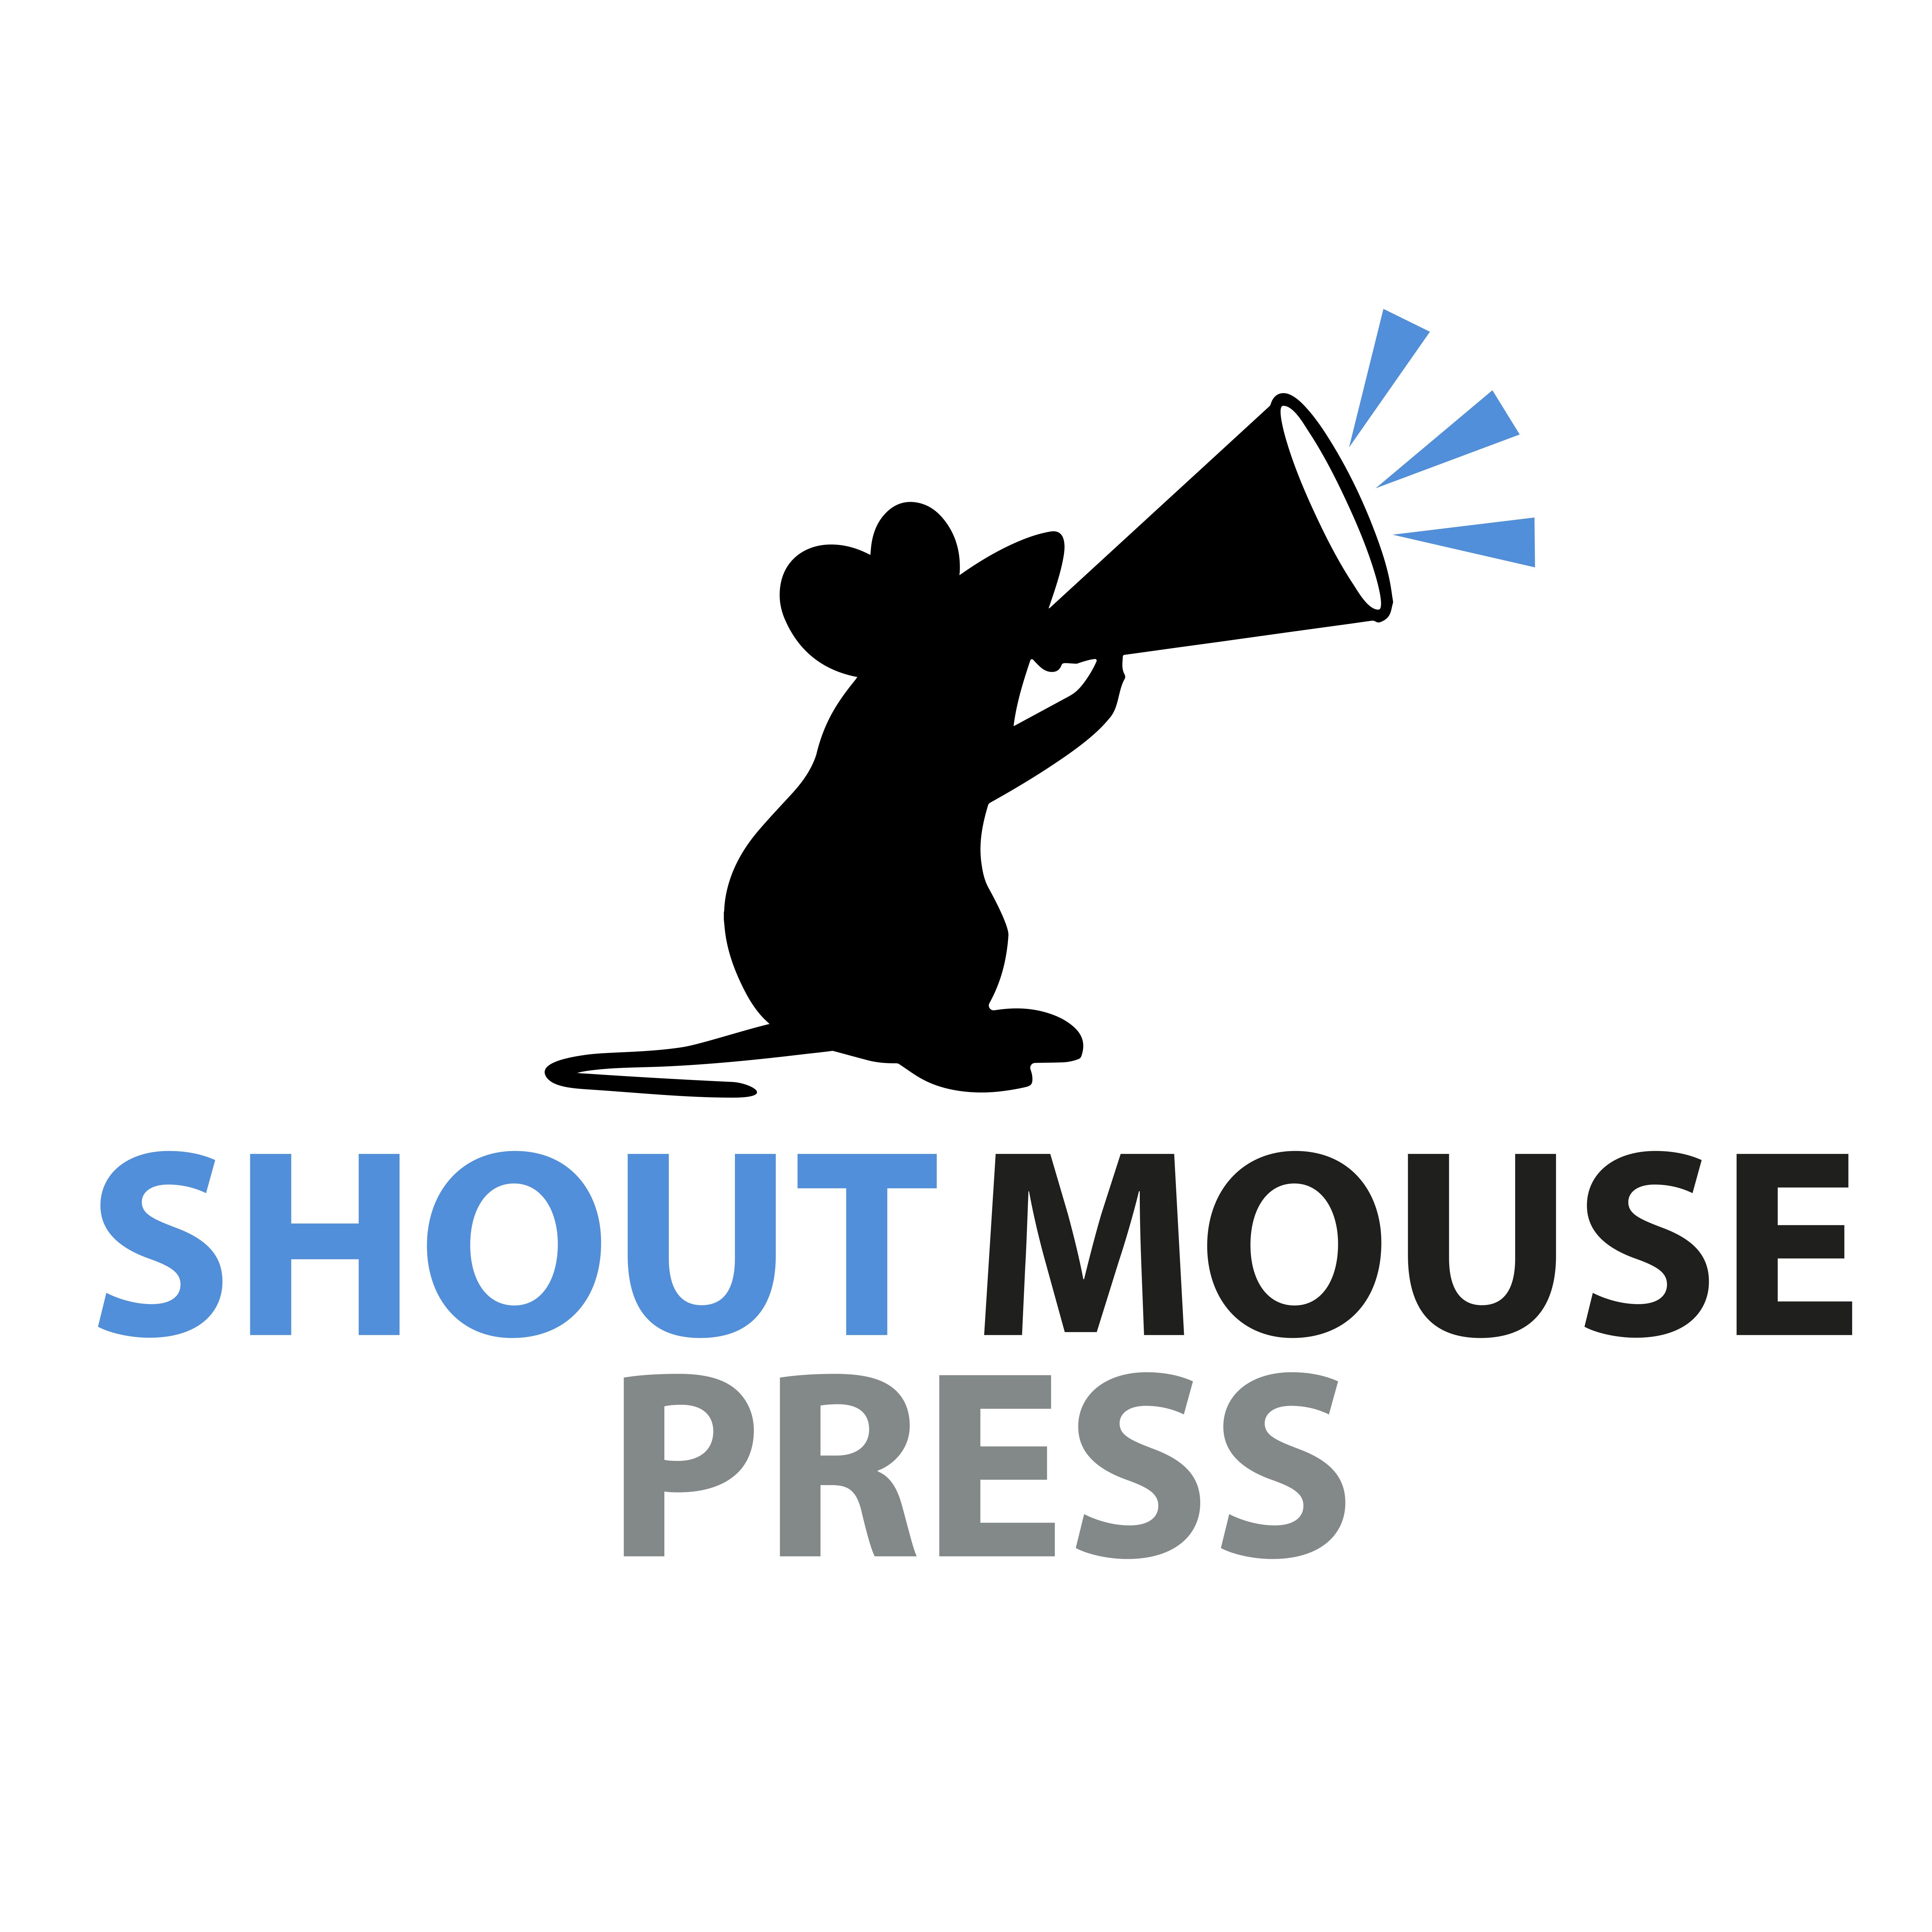 Shout Mouse Press